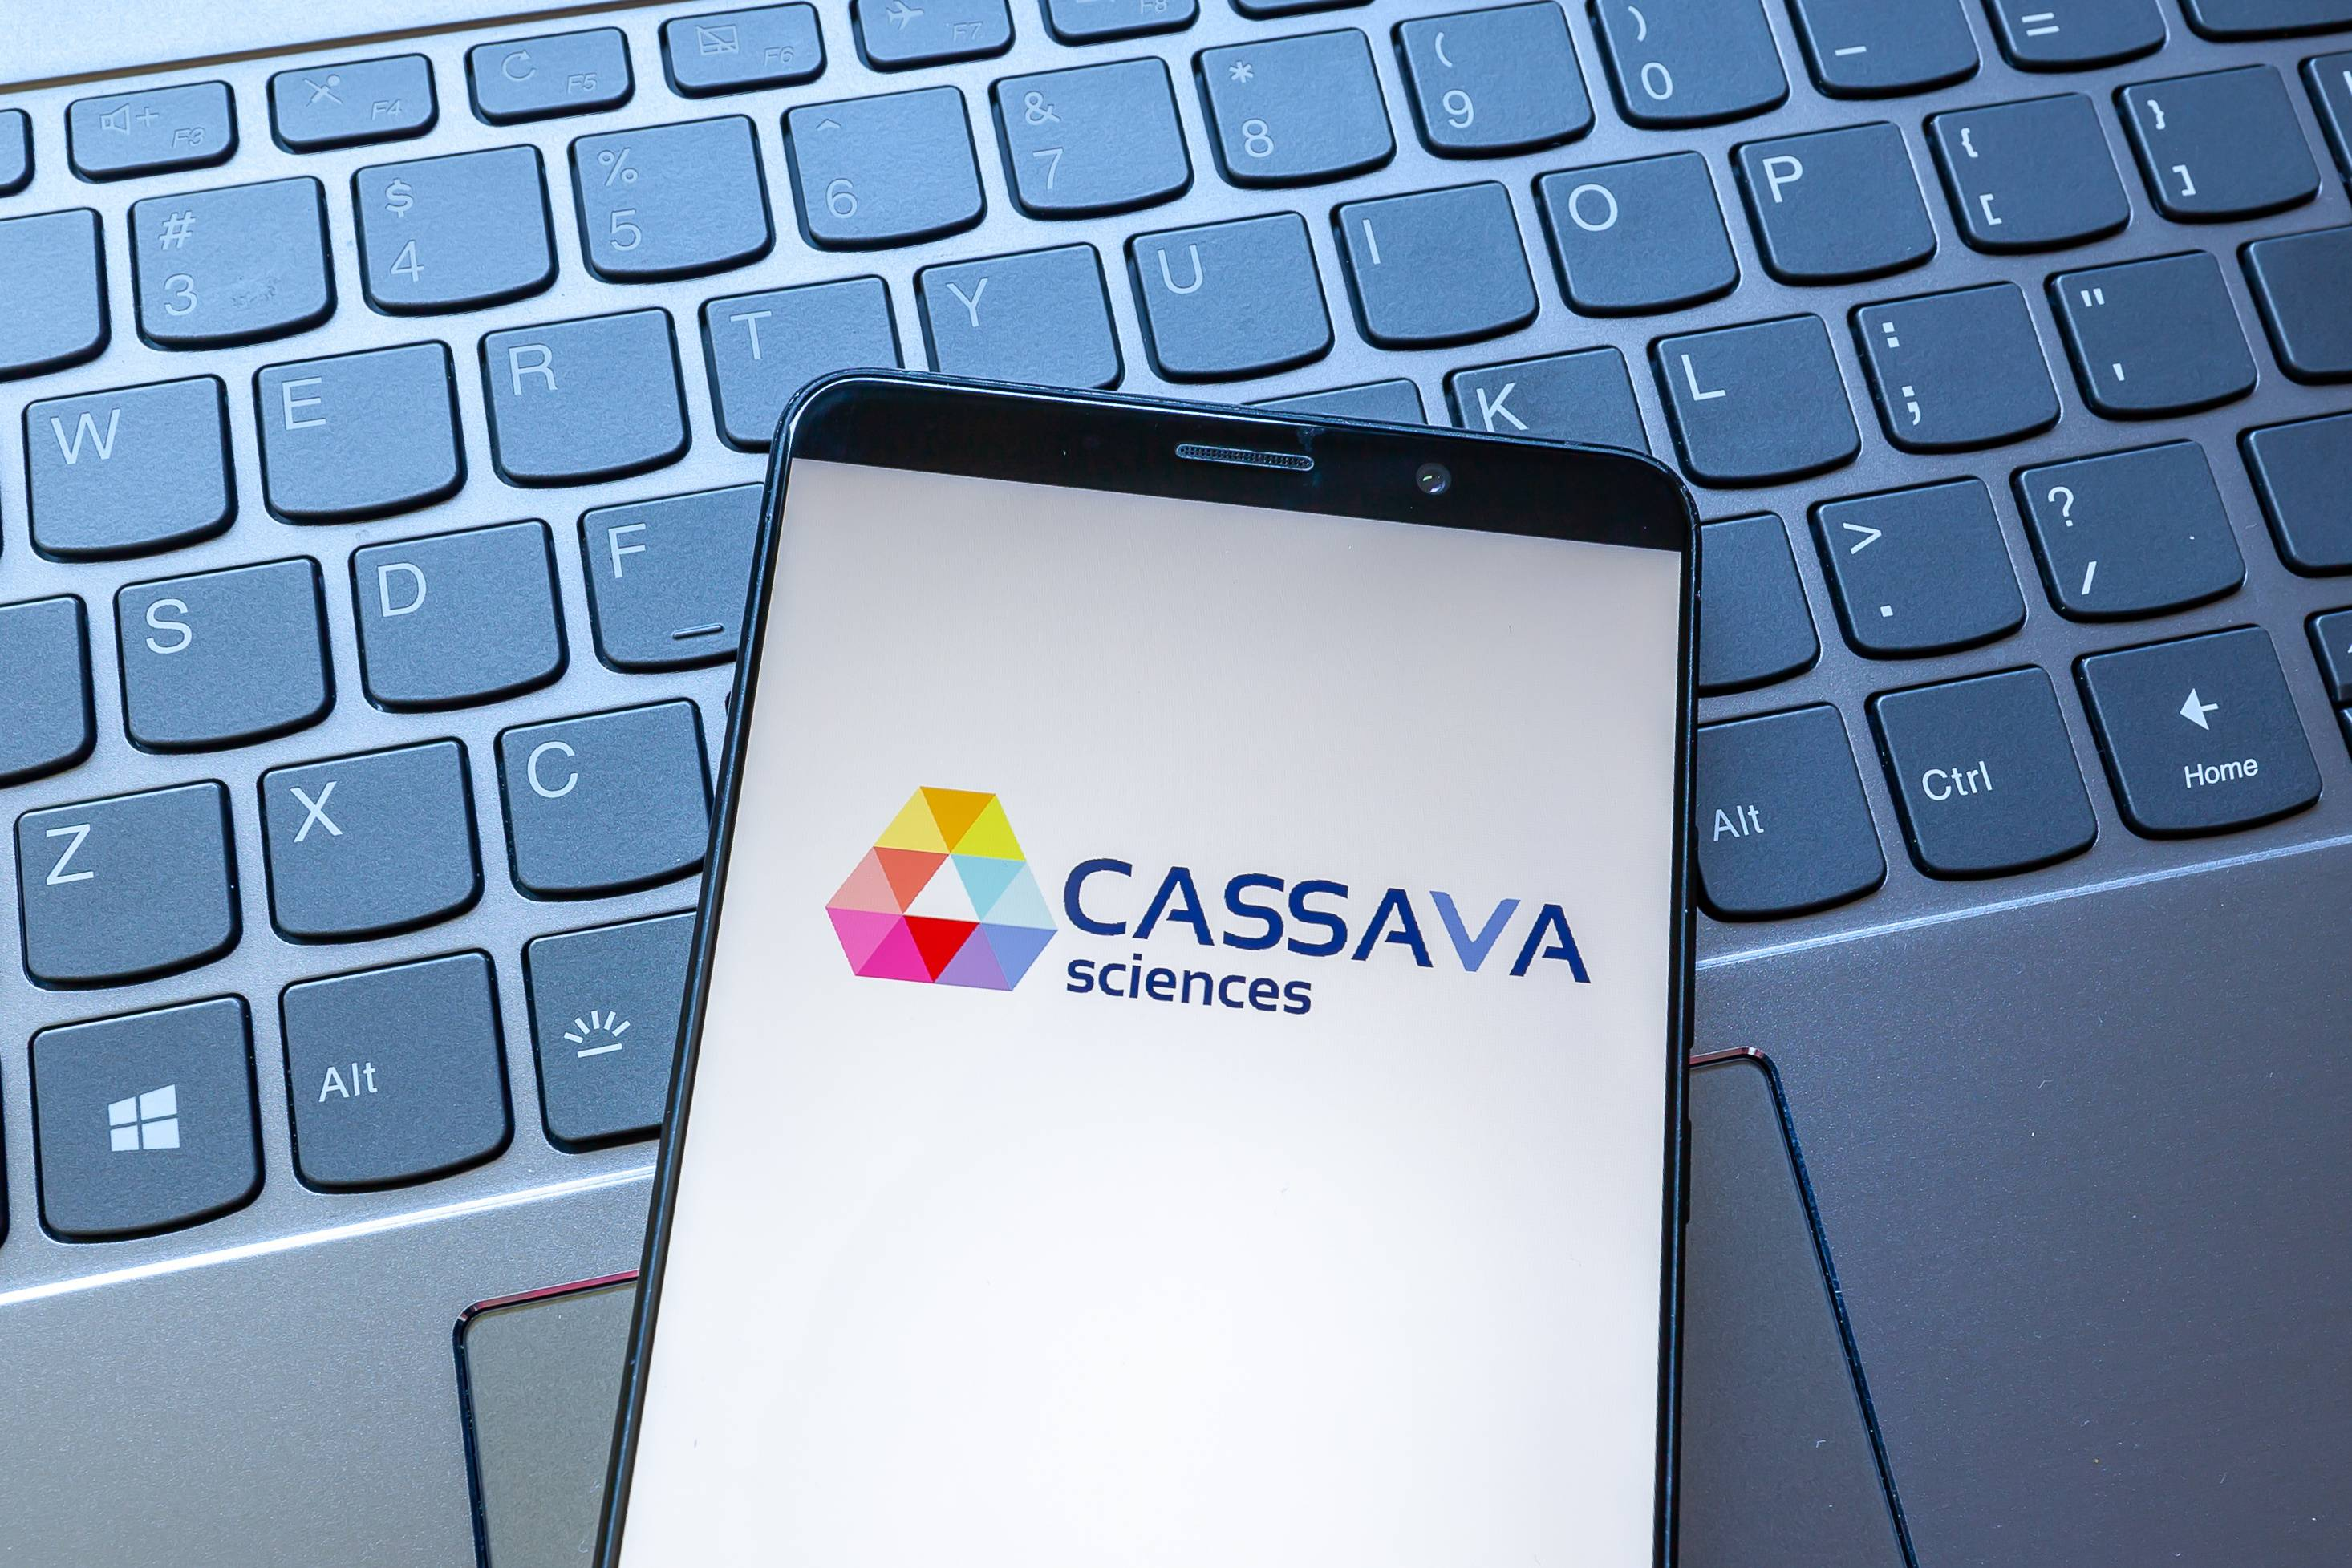 Analysts see upside in Cassava Sciences stock after its bullish run